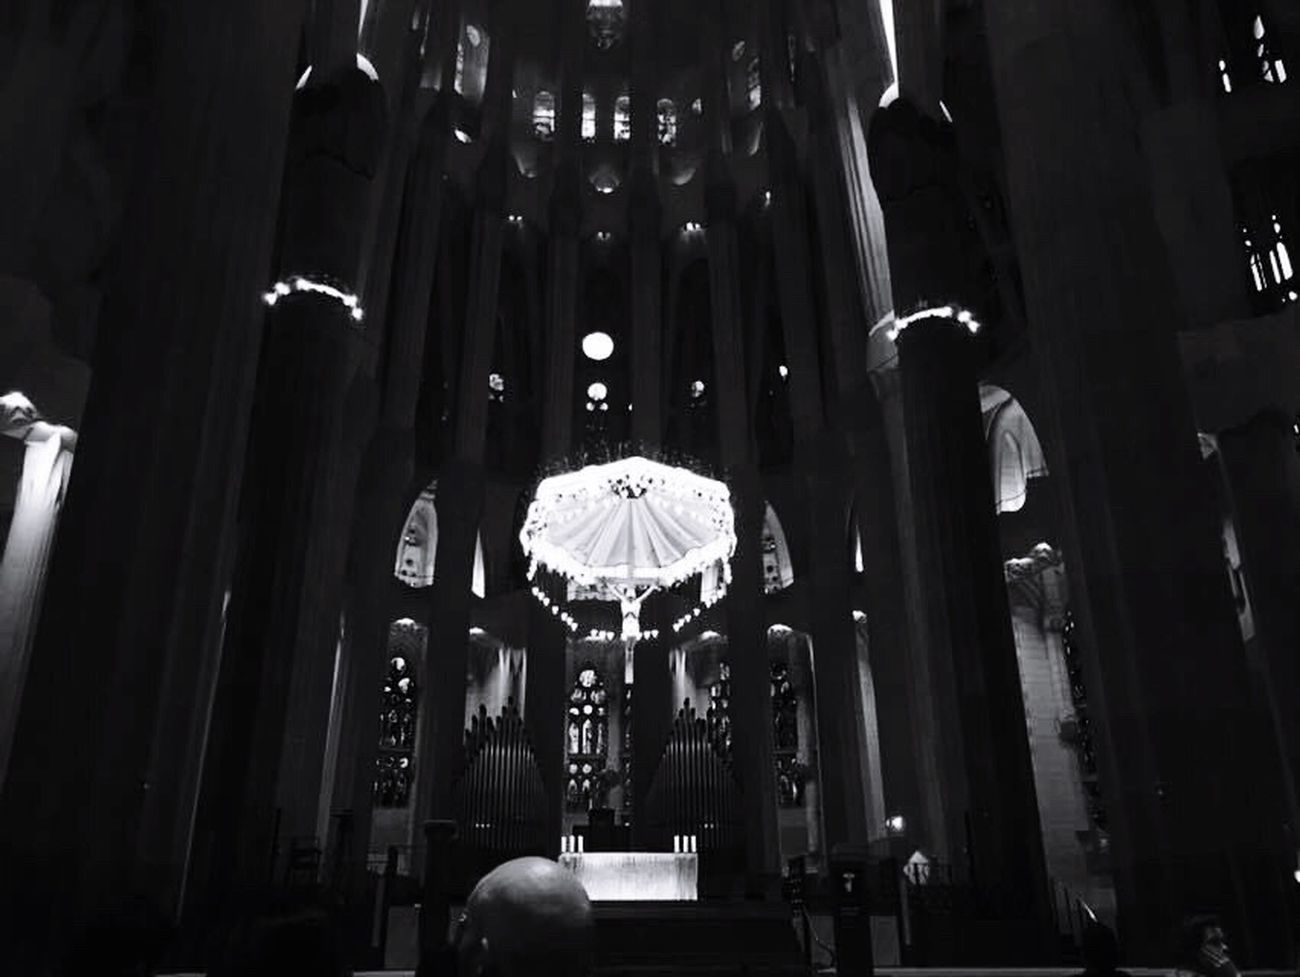 Photography Iphonephotography IPhoneography Spain2015🇪🇸 Barça Barcelona Sagradafamilia Holiday Holiday2015 Photography Iphonegraphy Iphonephotography